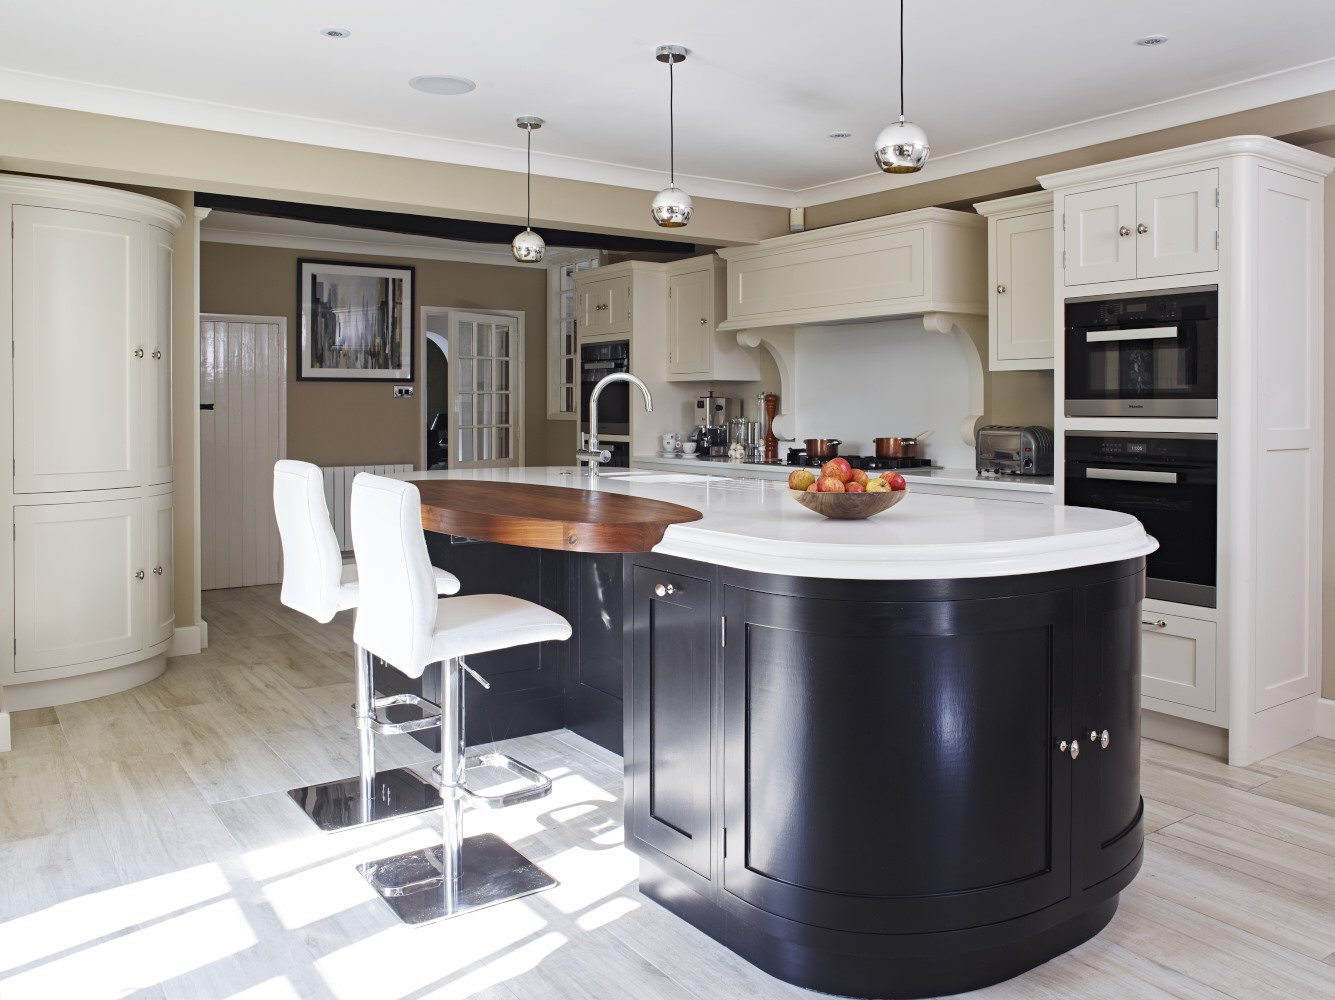 kitchen design in oxfordshire bespoke amp handmade kitchens oxfordshire uk evie willow 572